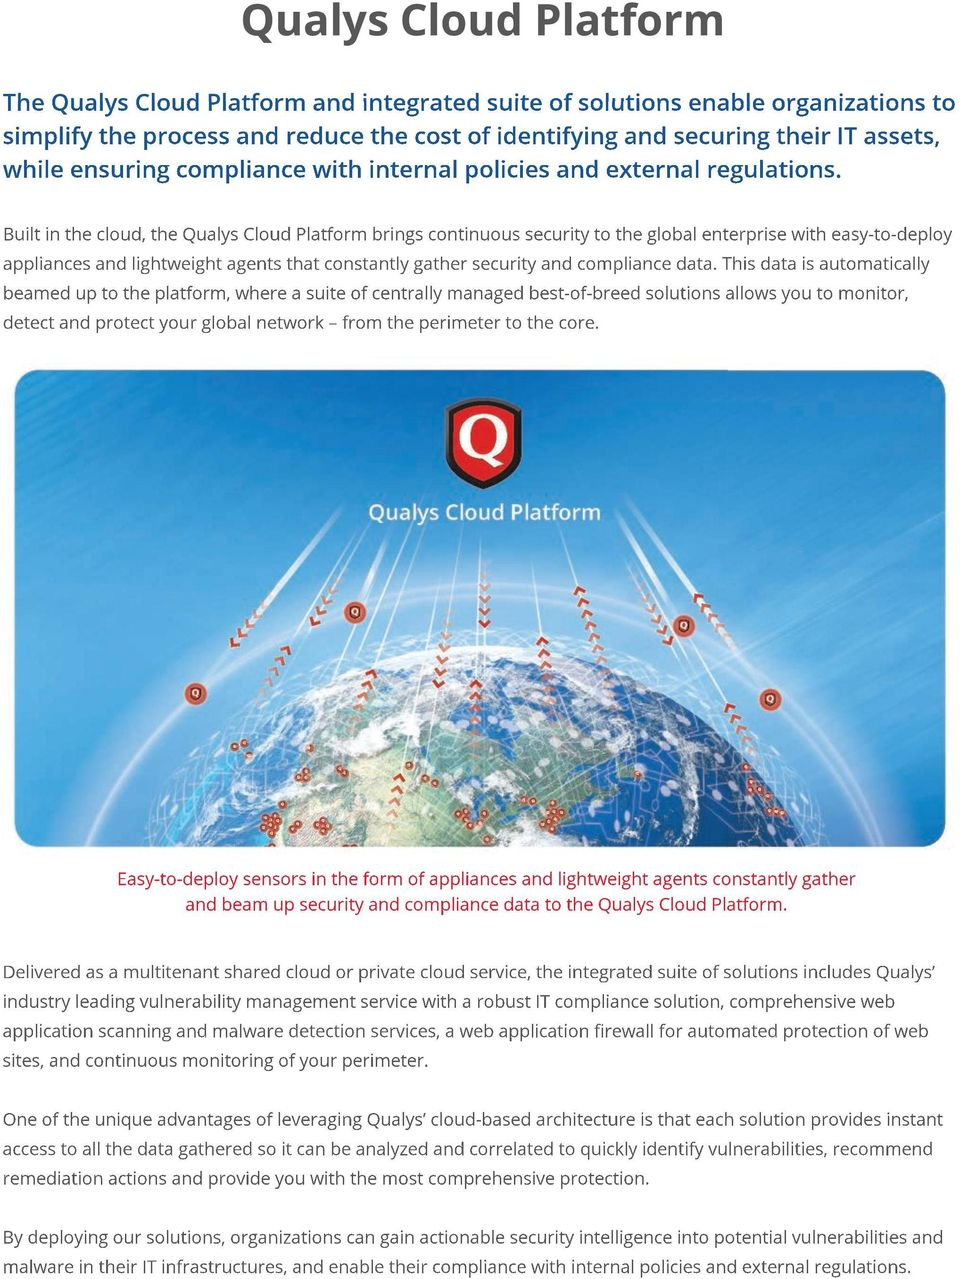 Built in the cloud, the Qualys Cloud Platform brings continuous security to the global enterprise with easy-to-deploy appliances and lightweight agents that constantly gather security and compliance